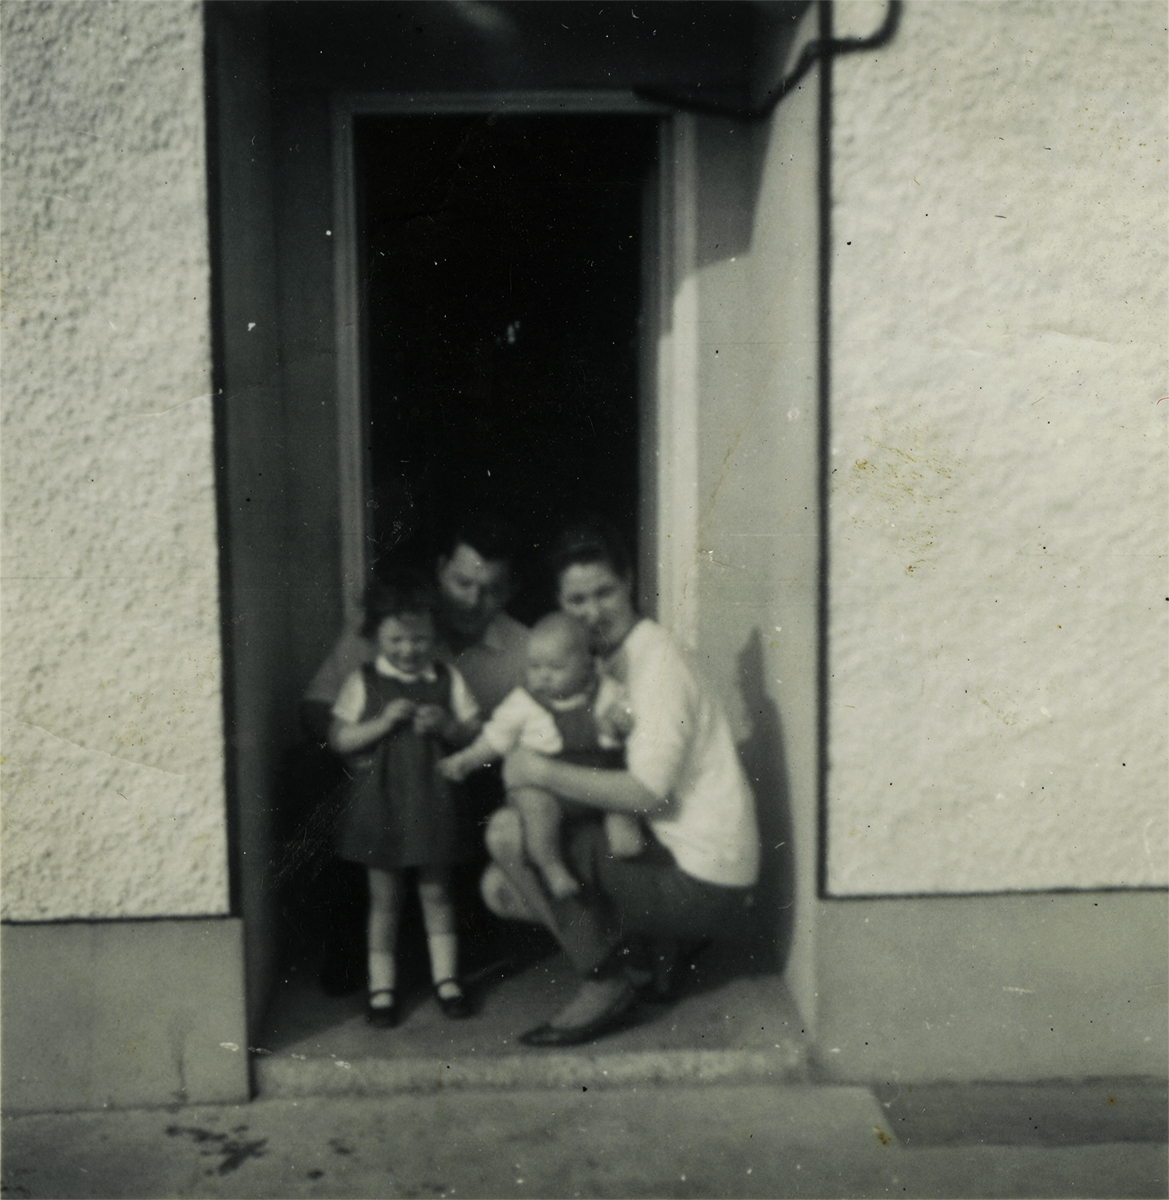 Conlon // Philadelphia & County Monaghan :: Seán & Kathleen McGreevey with their children Paula & baby Ken at their front door